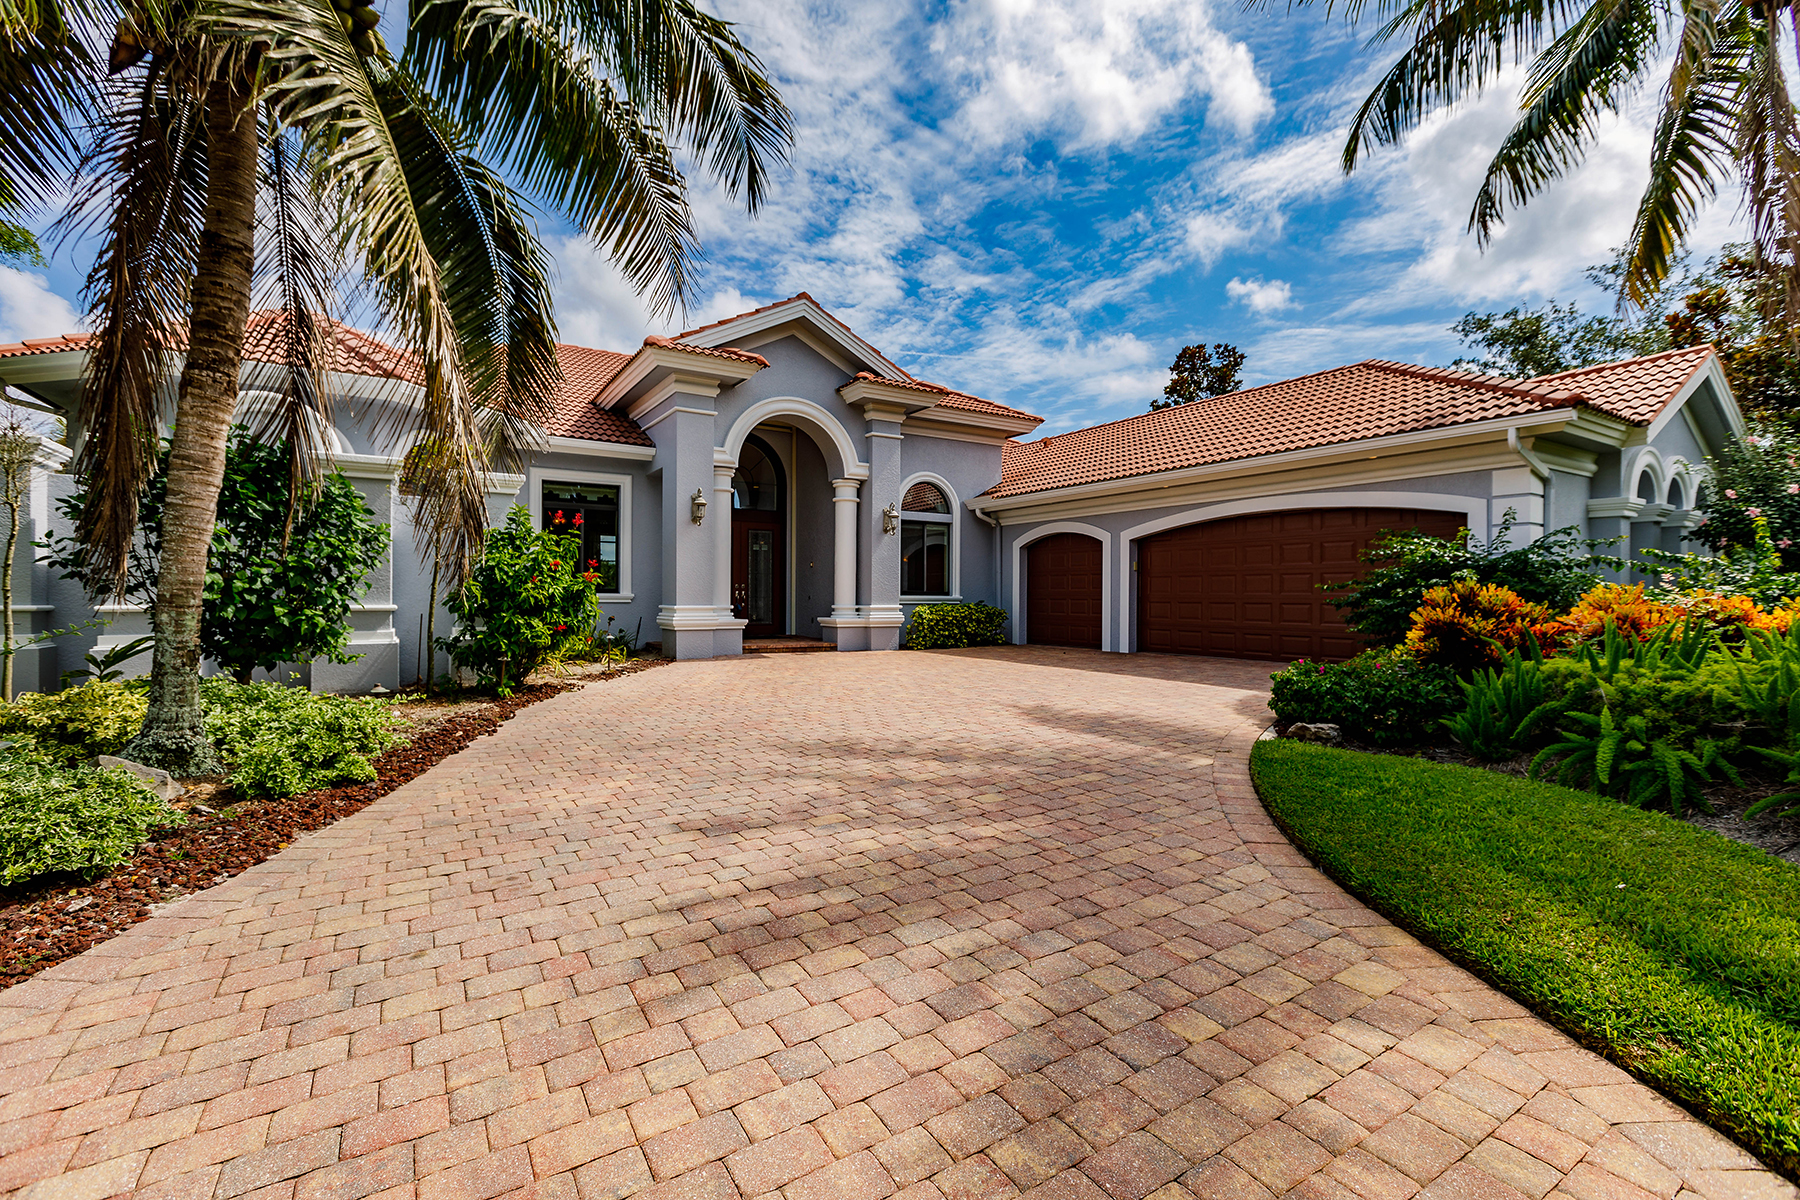 Single Family Homes için Satış at SHADOW WOOD AT THE BROOKS 22351 Banyan Hideaway Drive, Estero, Florida 34135 Amerika Birleşik Devletleri